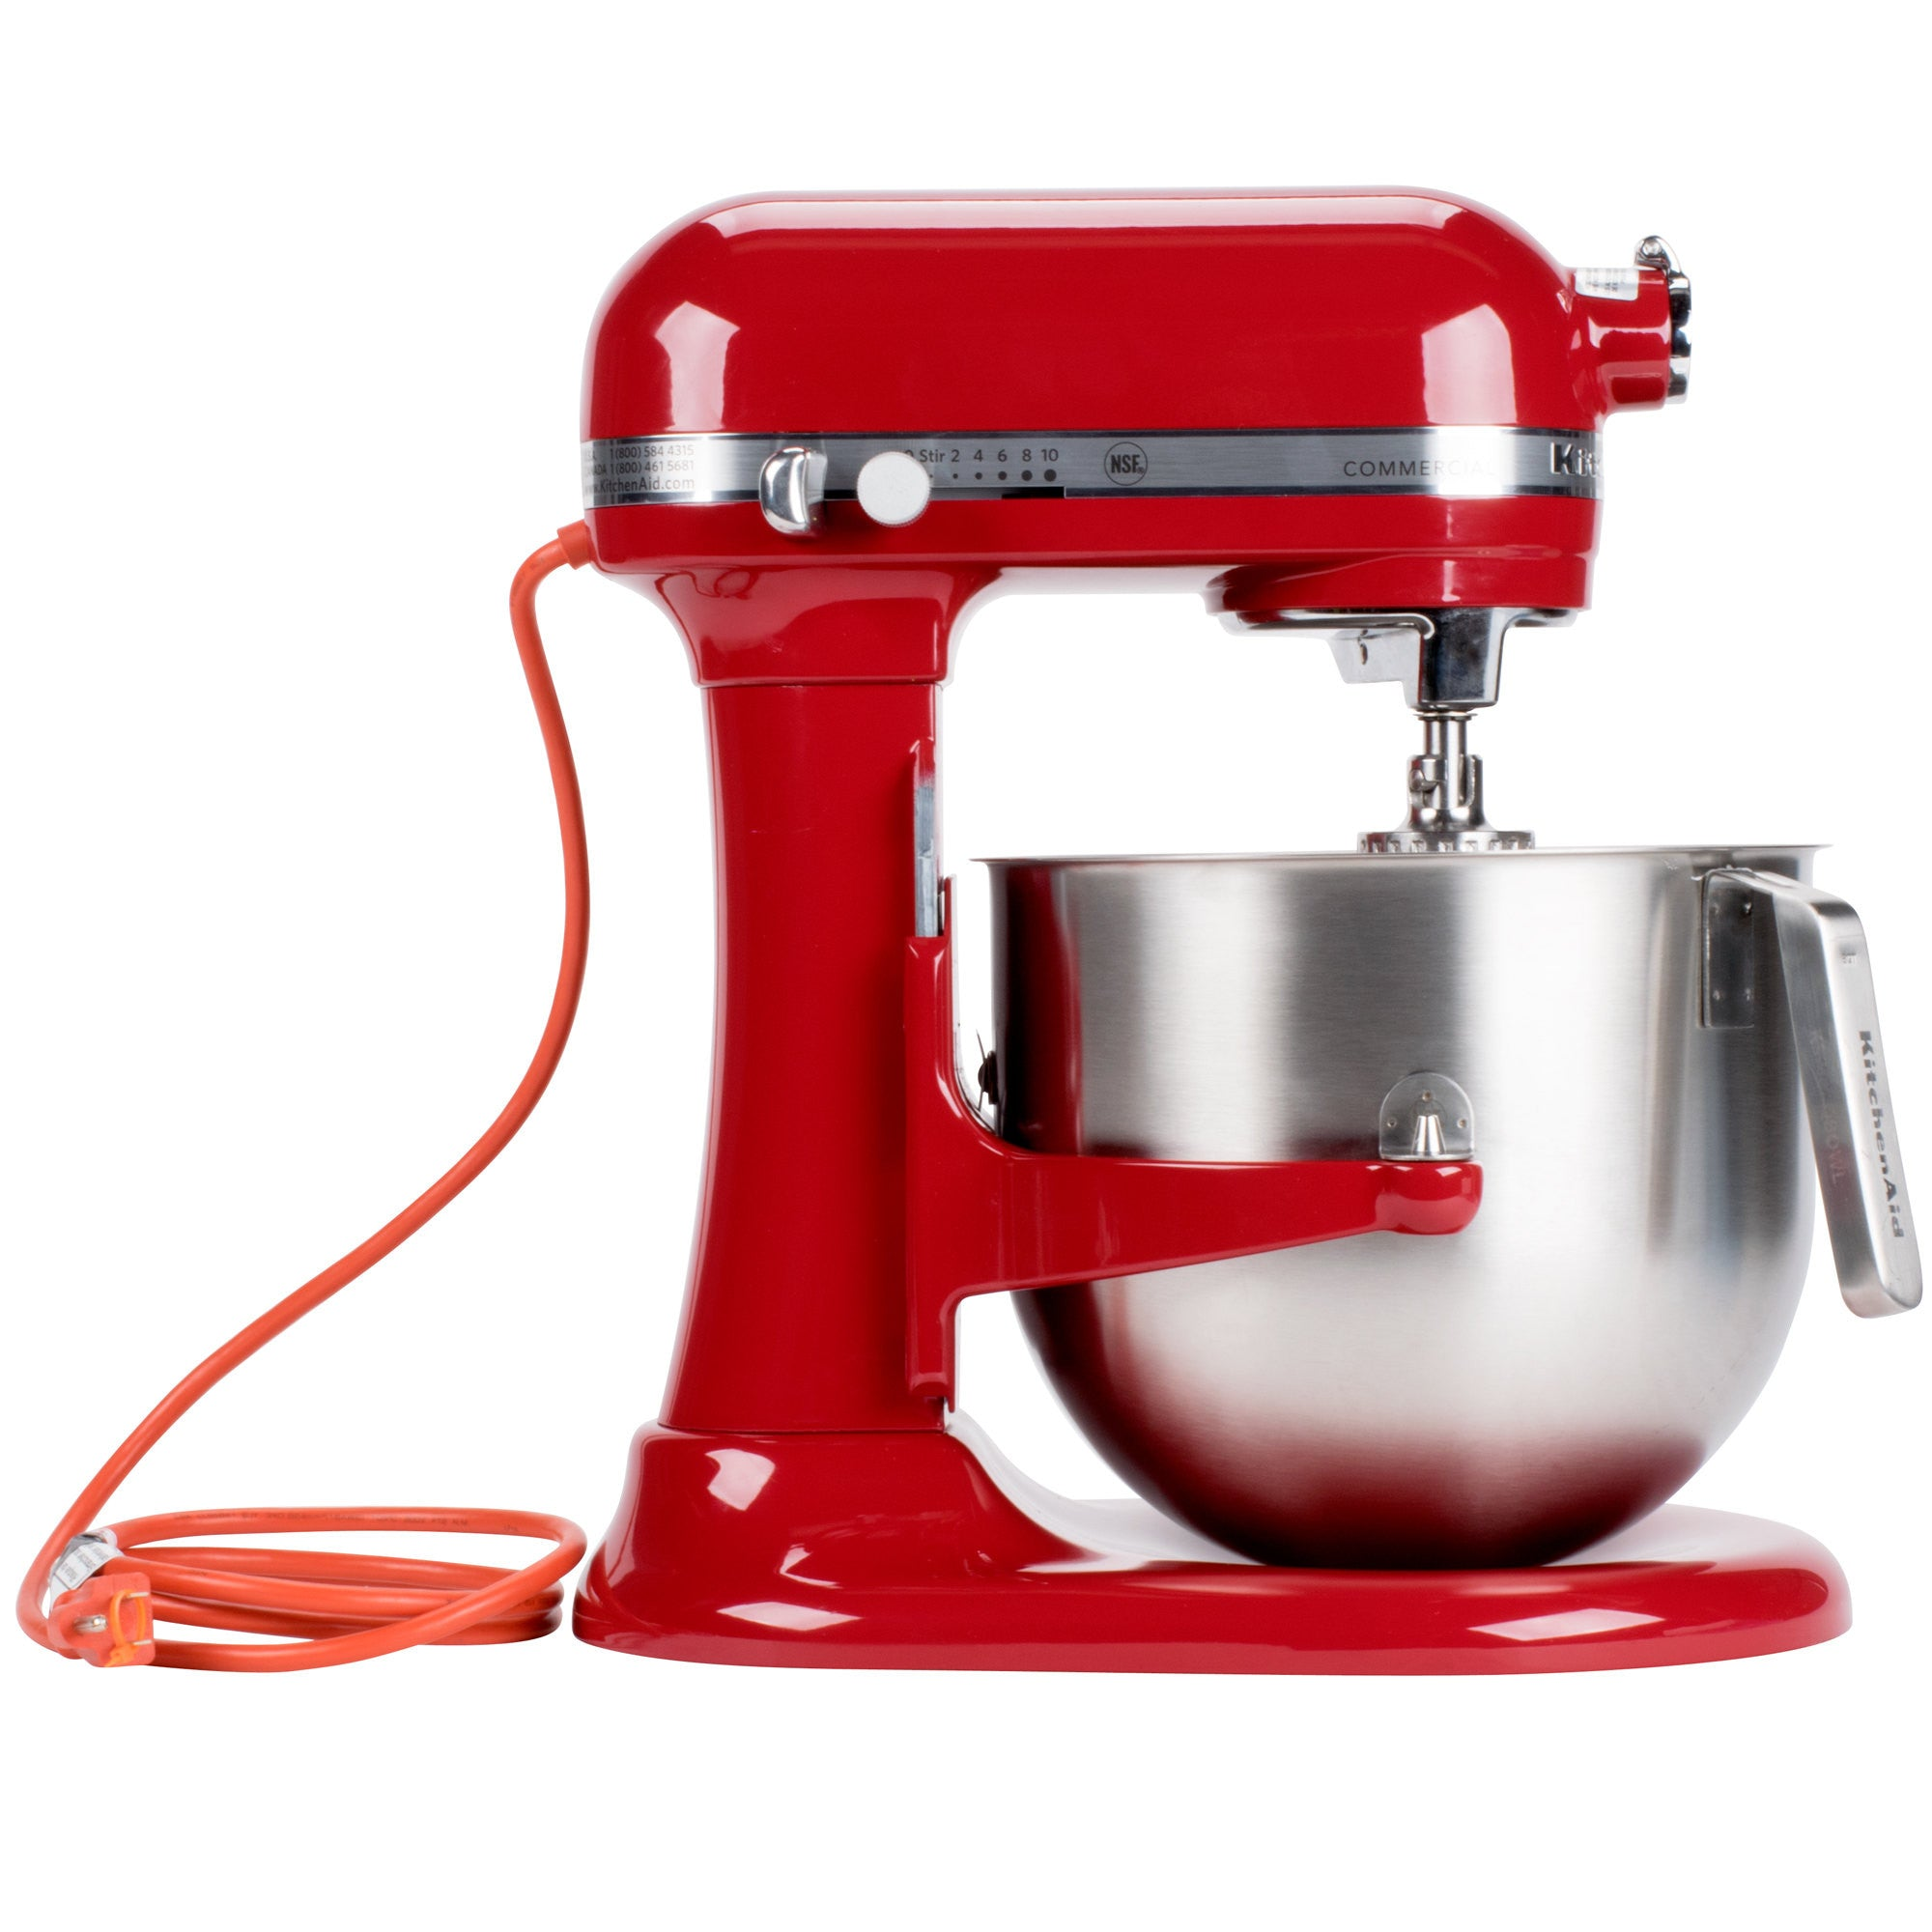 kitchenaid 8 quart commercial stand mixer. kitchenaid® nsf certified® commercial series 8-qt bowl lift stand mixer - the kitchenaid 8 quart f